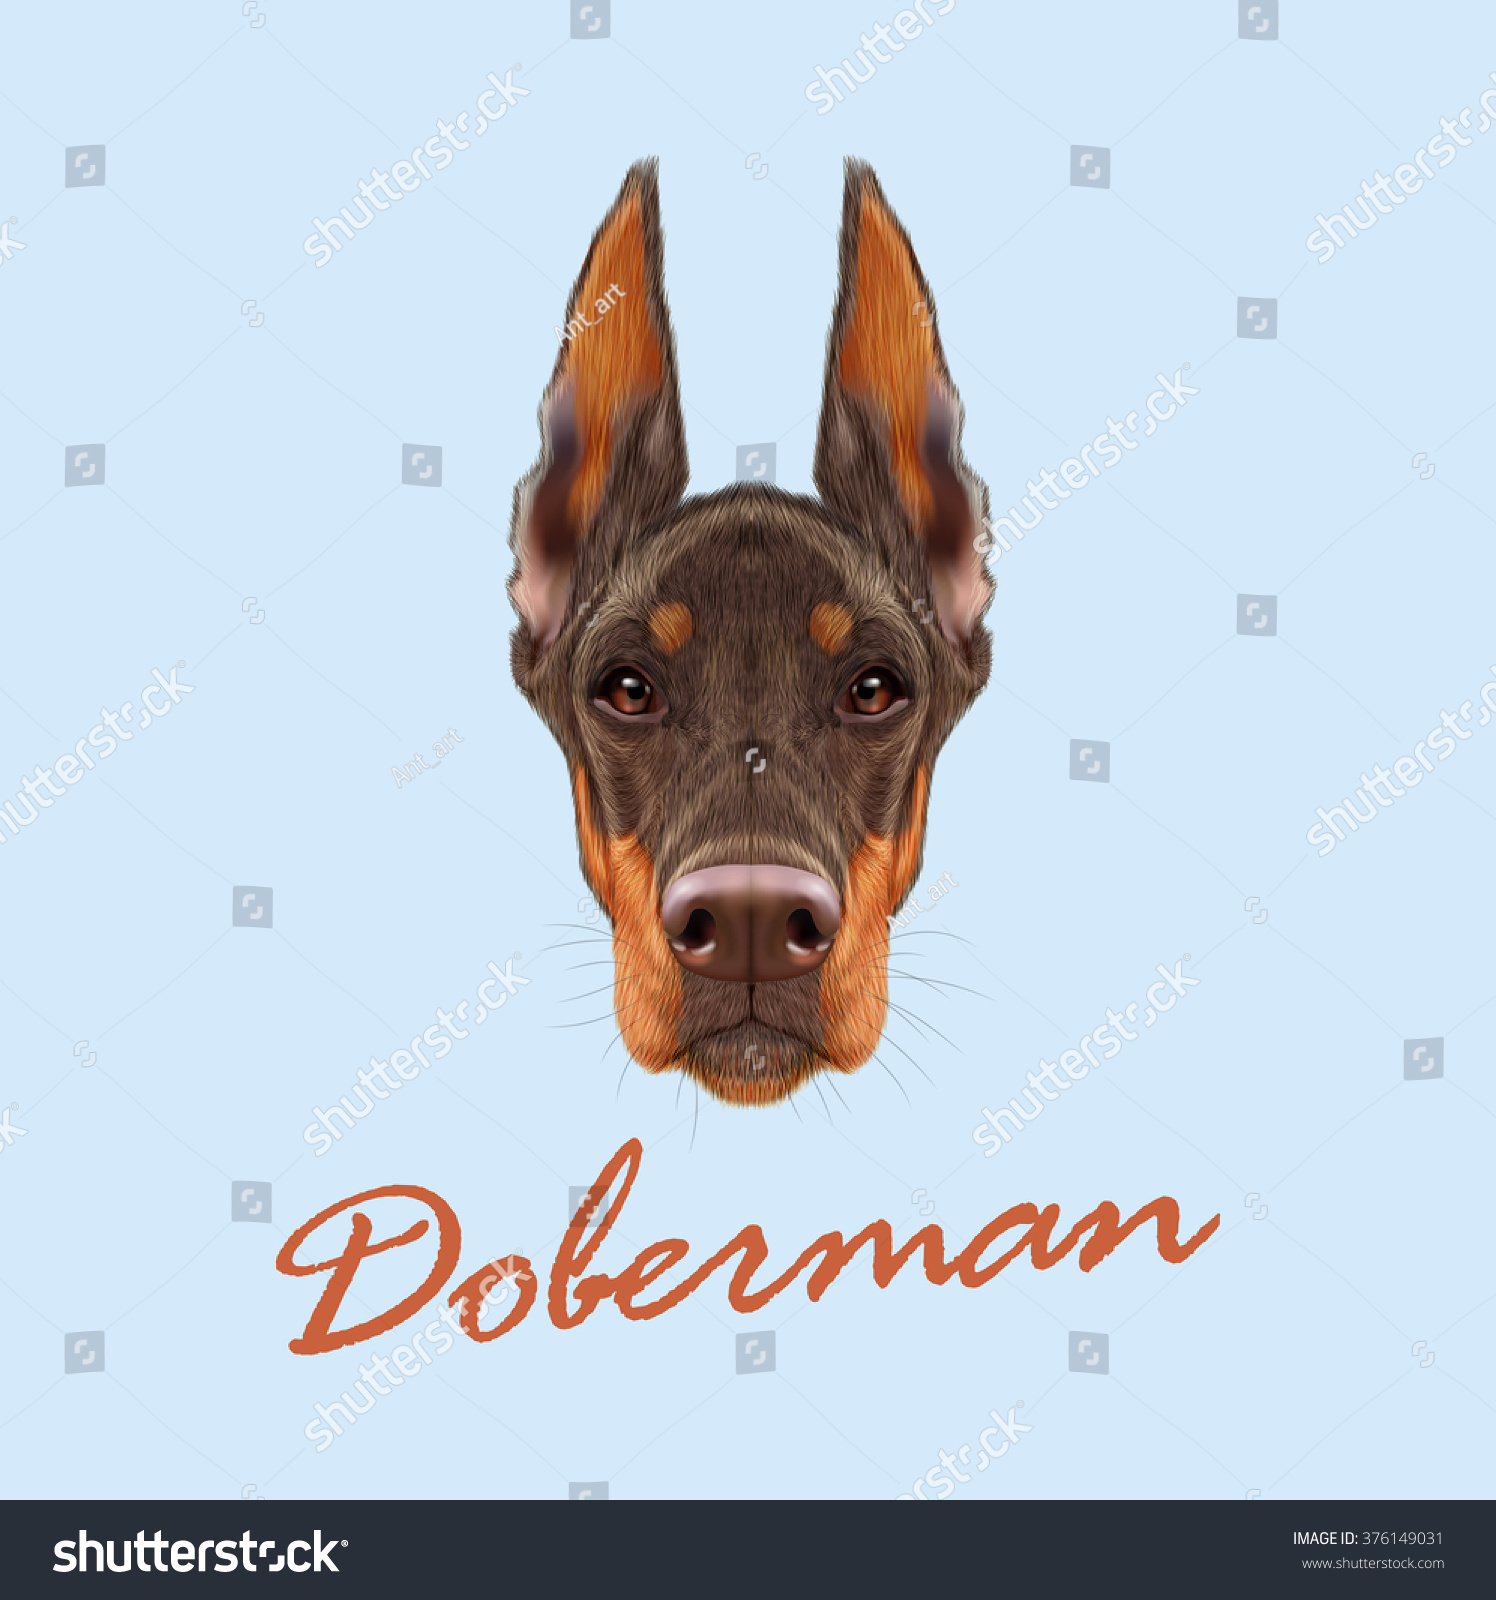 Doberman Pinscher Dog Vector Illustrated Portrait Stock Vector Royalty Free 376149031